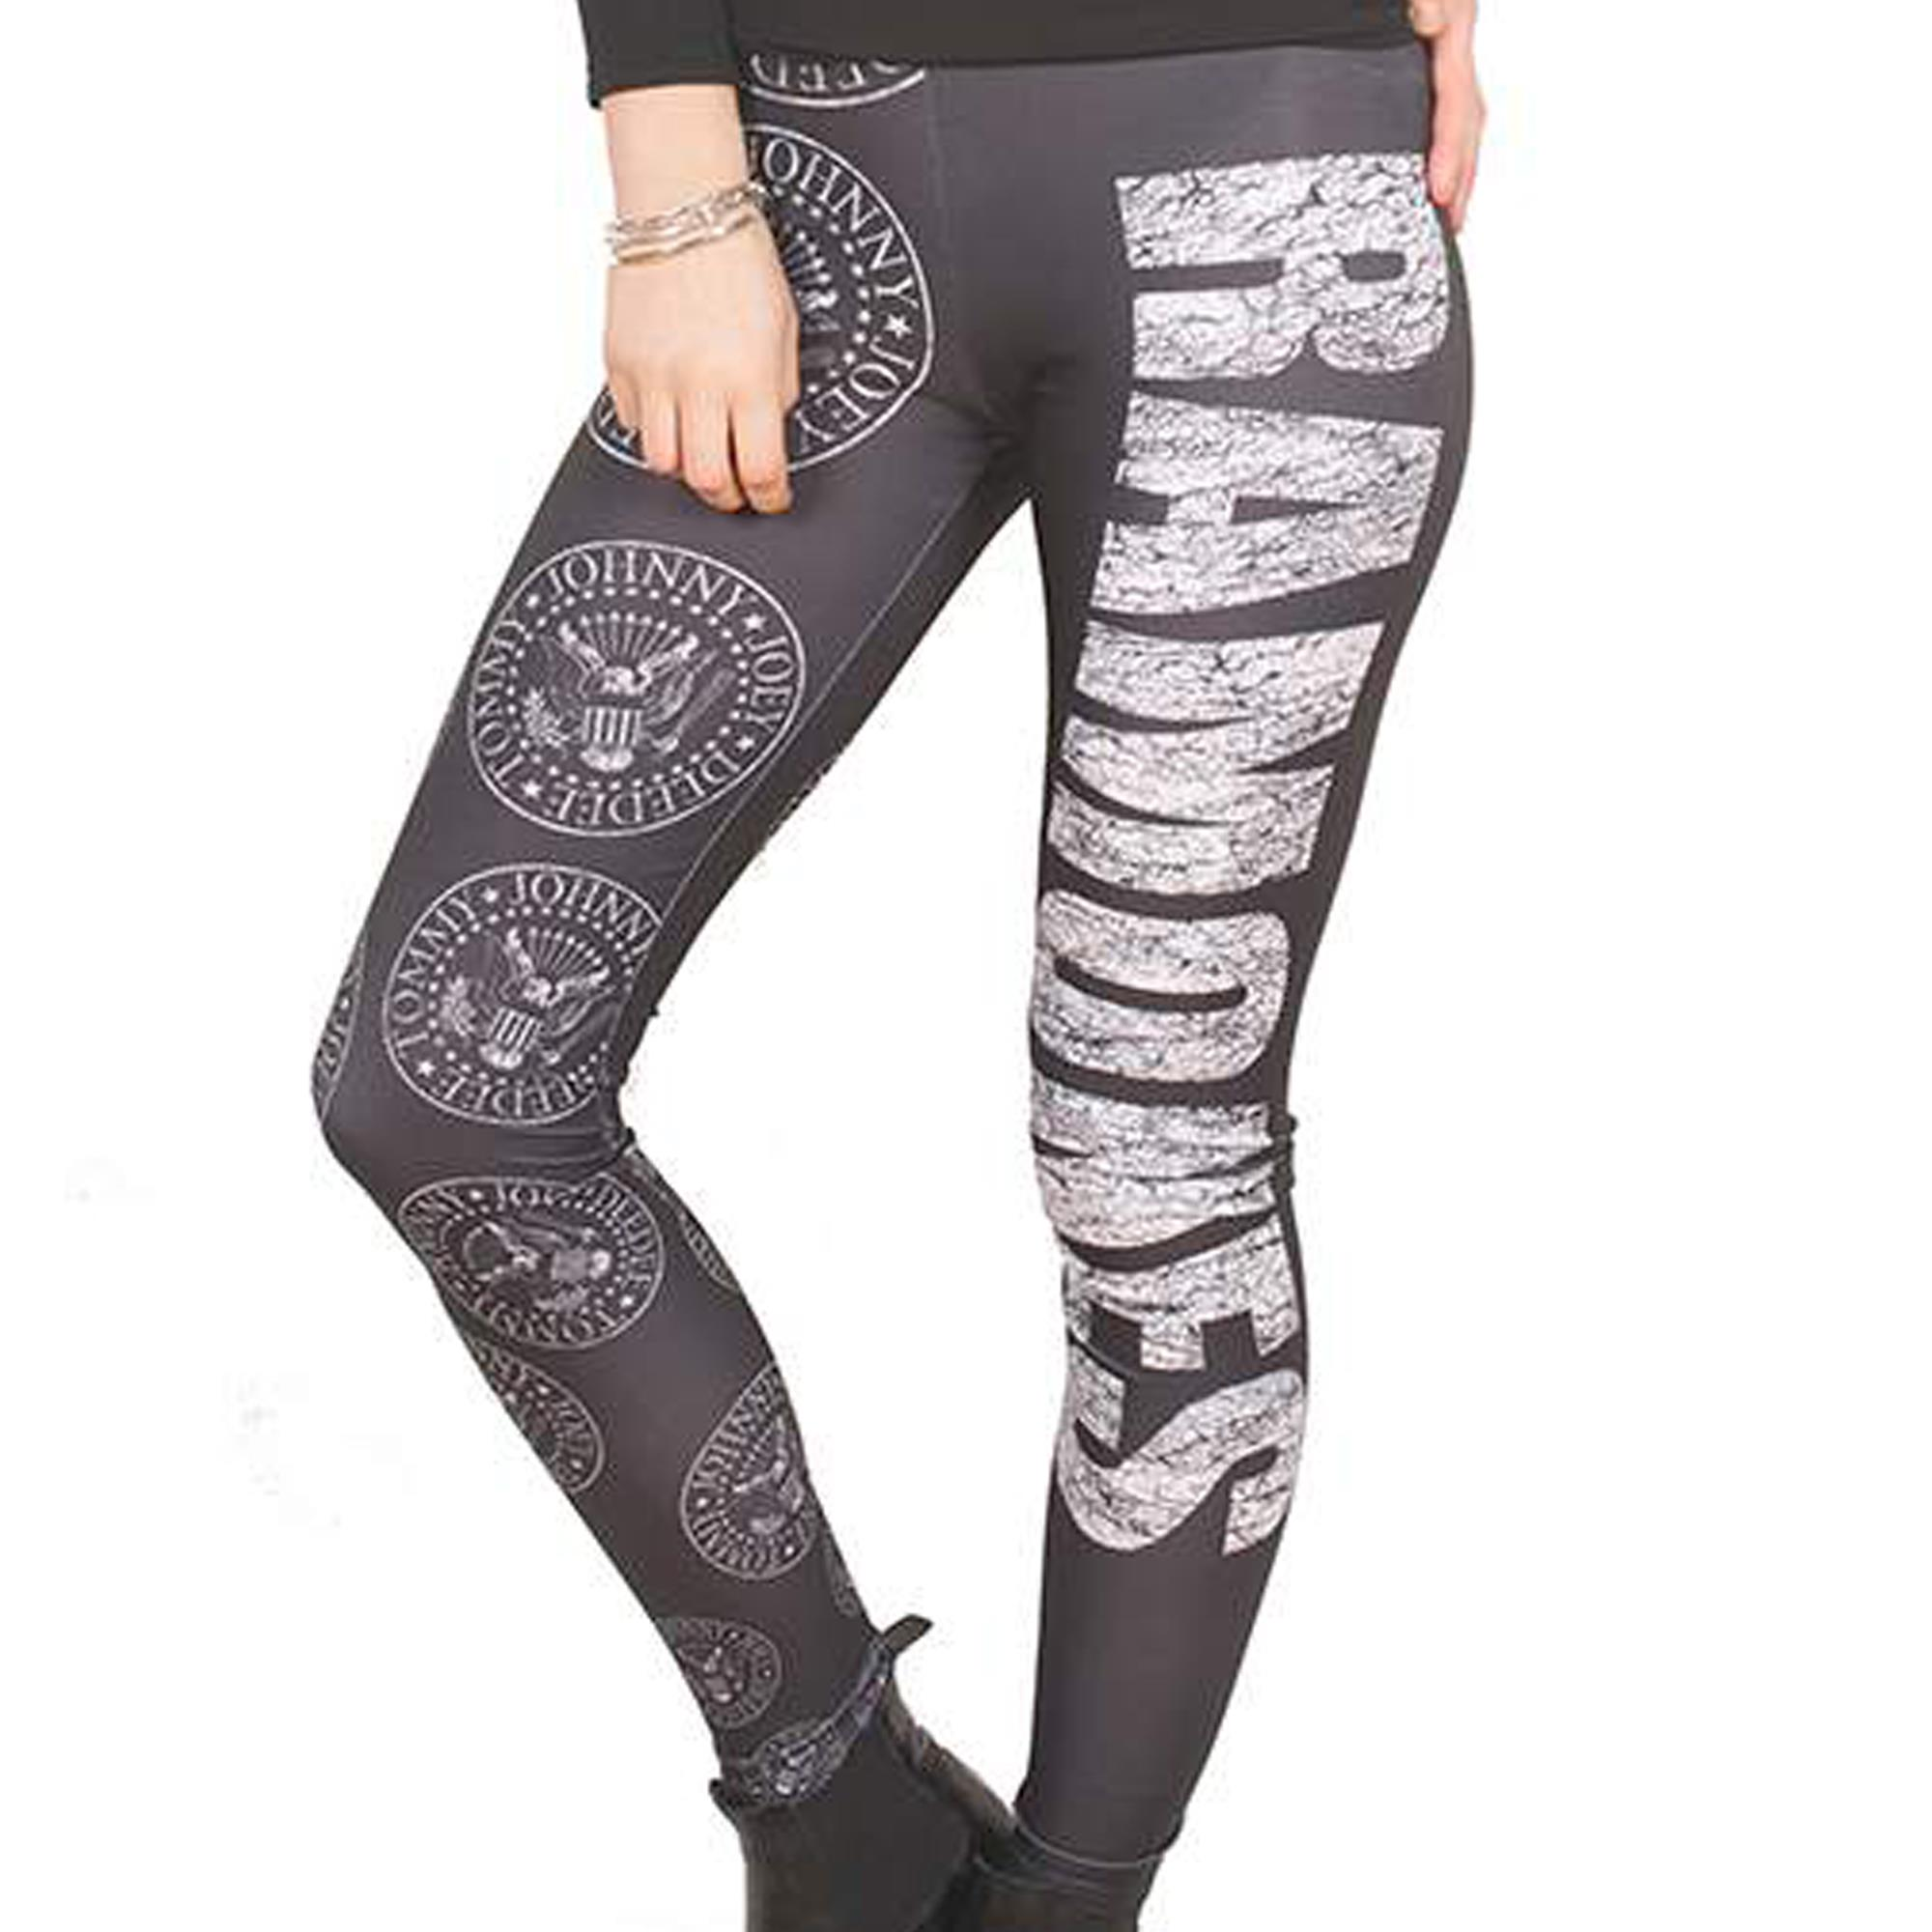 Presidential Seal Legging